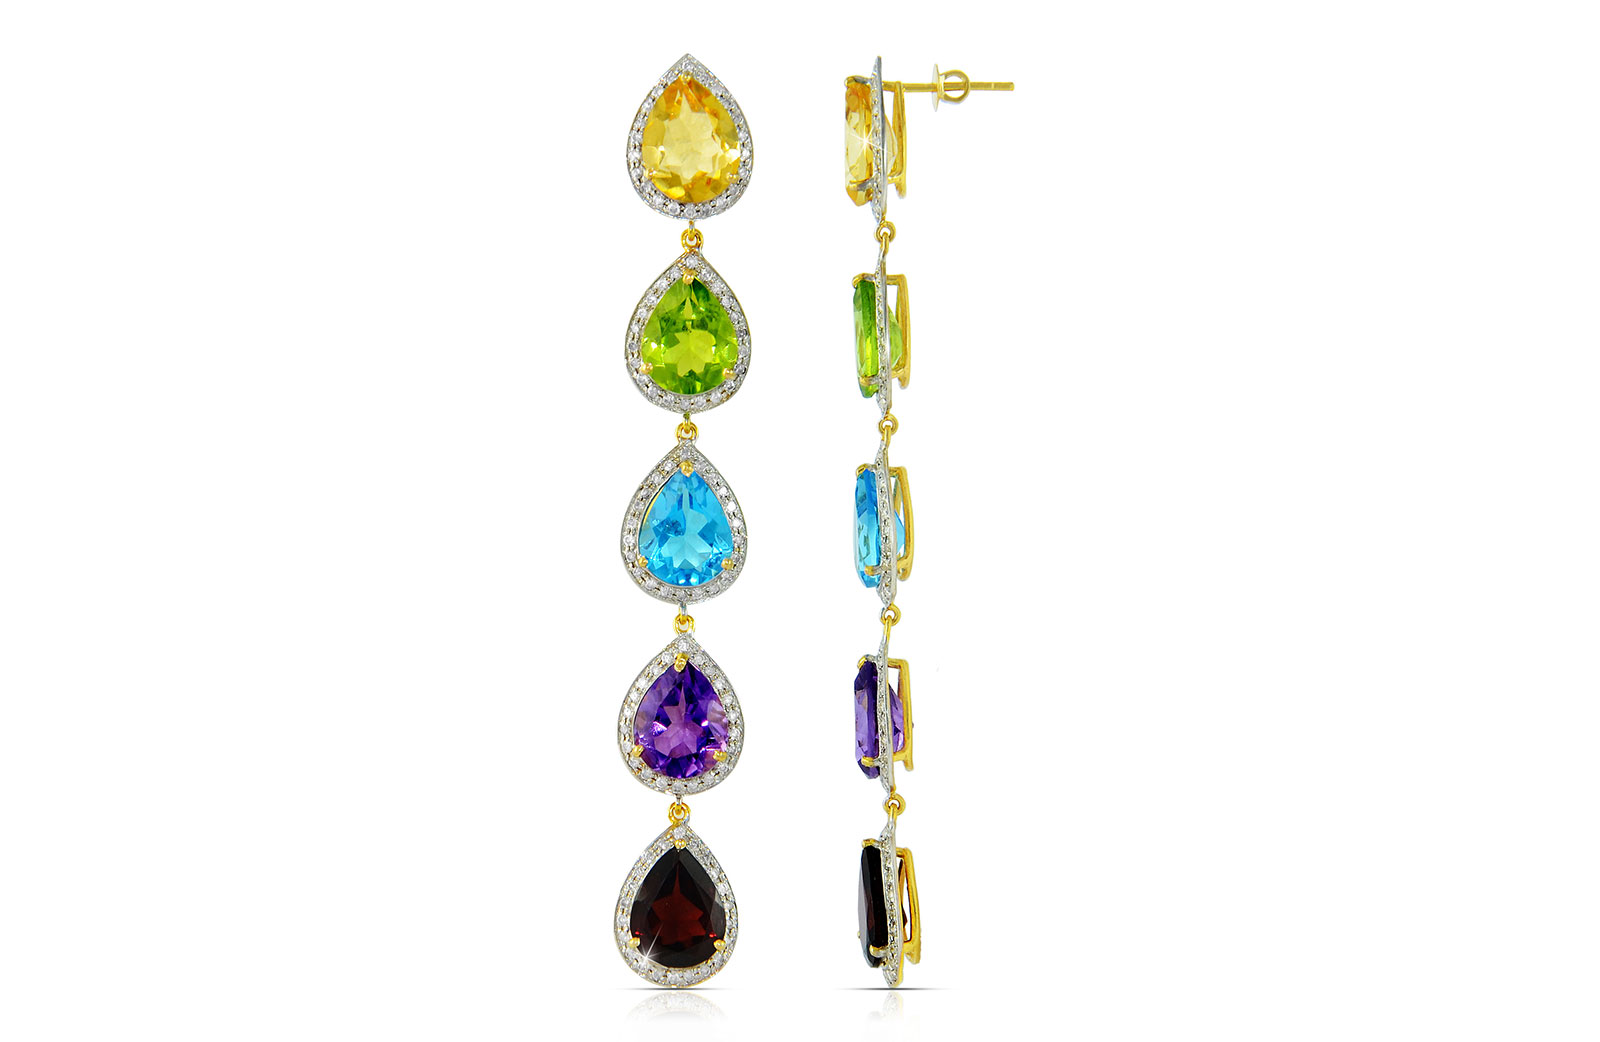 Vera Perla 18K  Gold 1.28Ct Genuine Diamonds, Citrine, Peridot, Swiss Blue Topaz, Amethyst, Garnet earrings